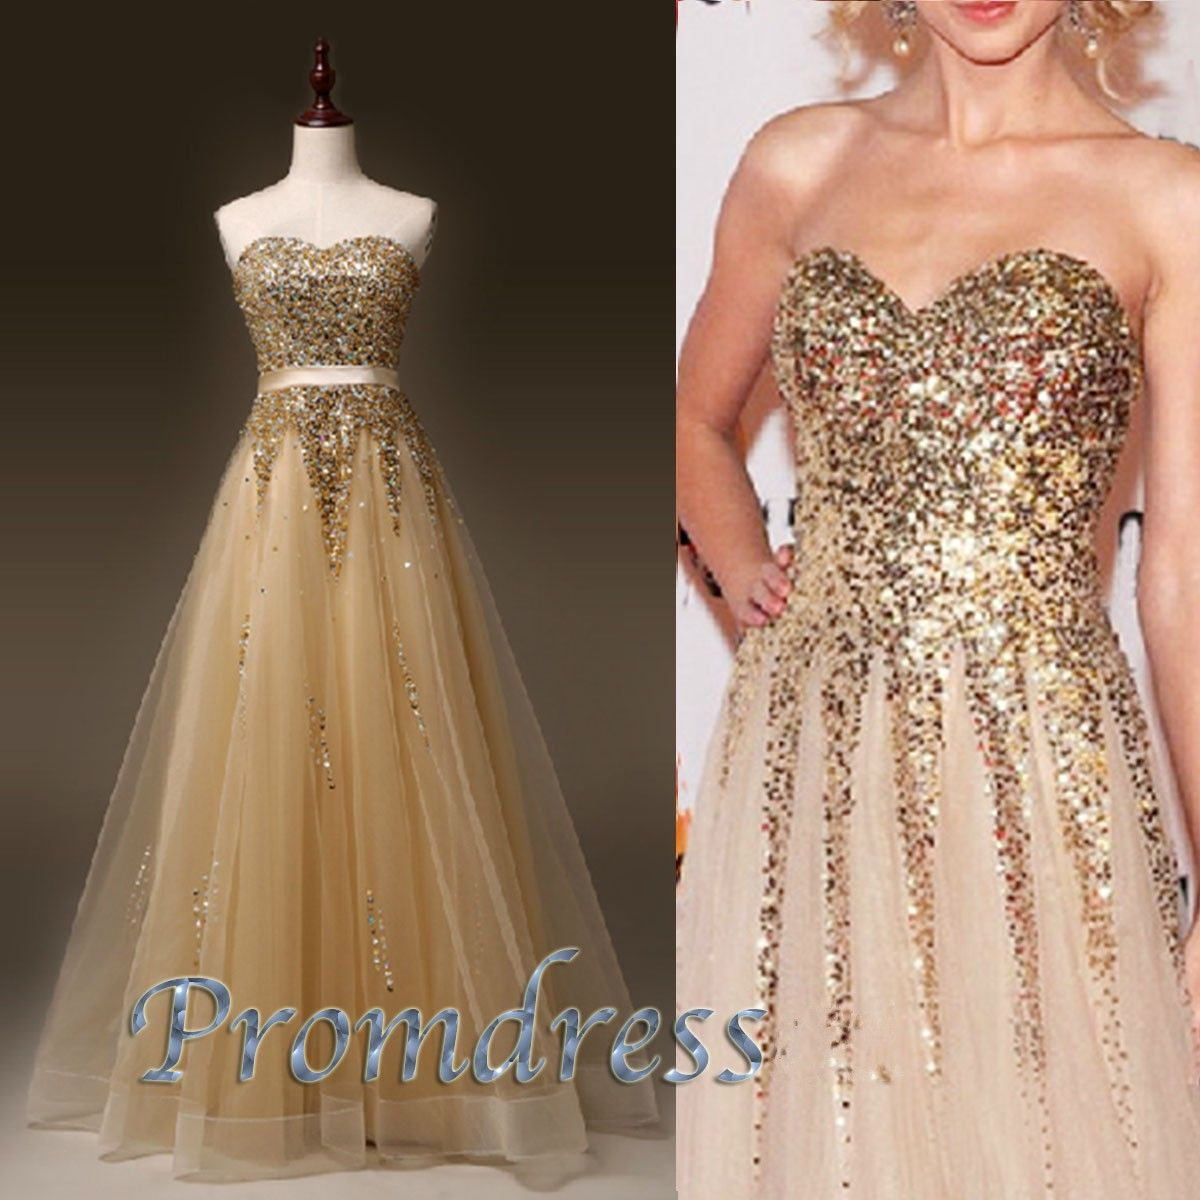 Diyouth golden sequins tulle aline long prom dress evening gown